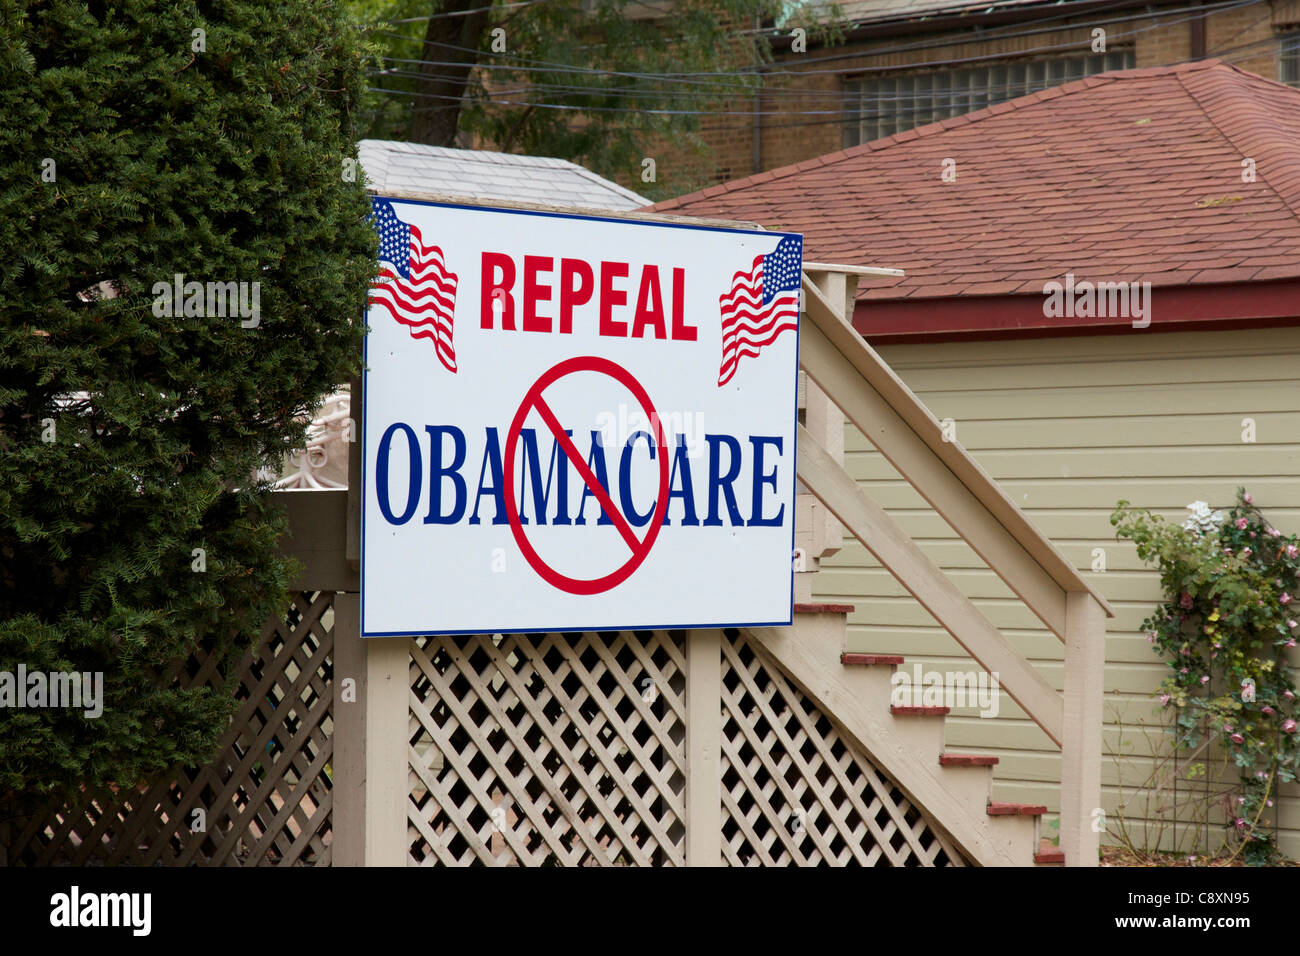 repeal-obamacare-sign-on-backyard-deck-o